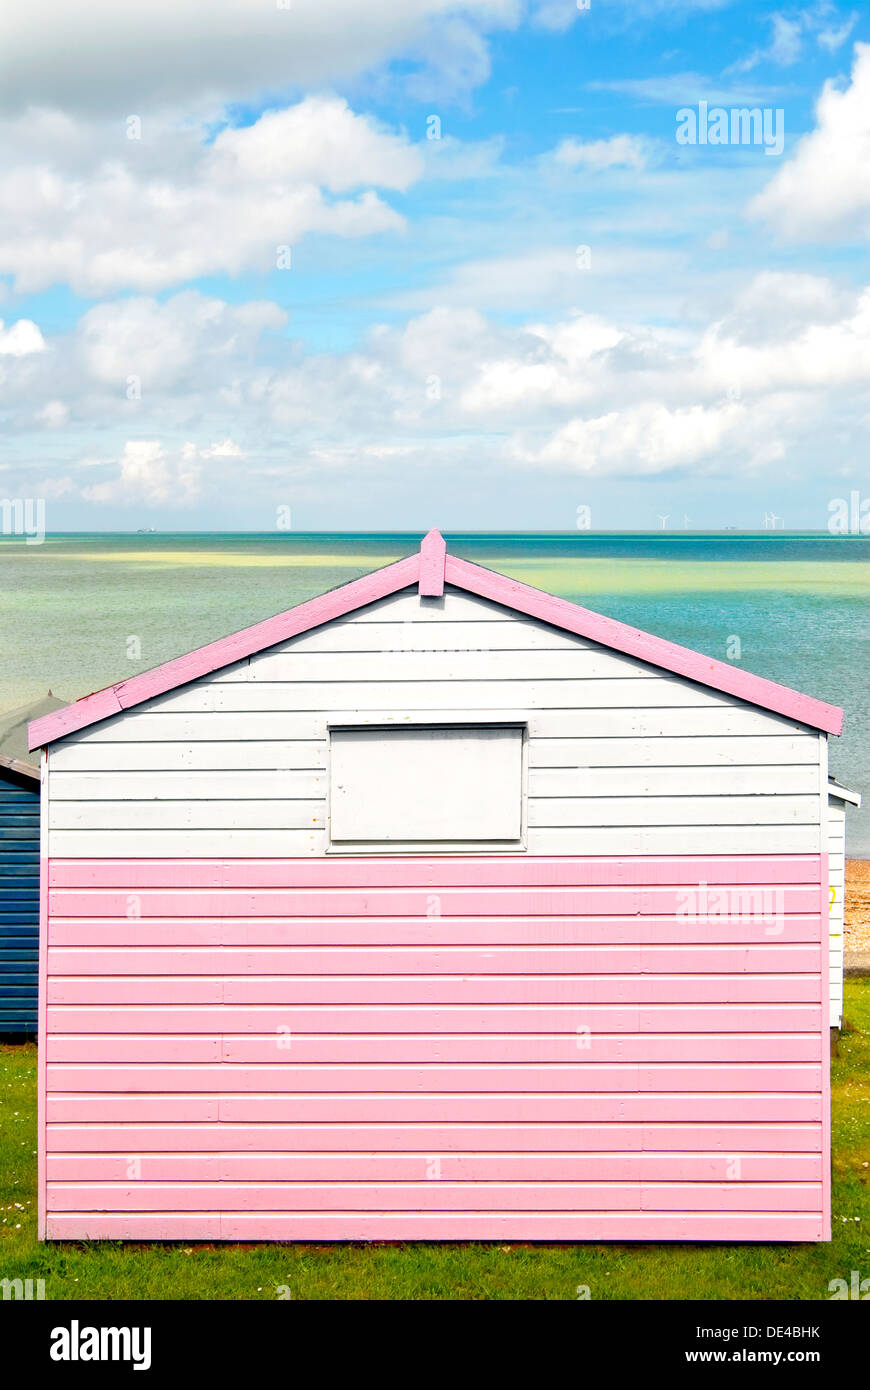 Whitstable, Kent, England, UK, Britain, Europe. Colourful beach huts overlooking the Thames estuary on the north Kent coast - Stock Image